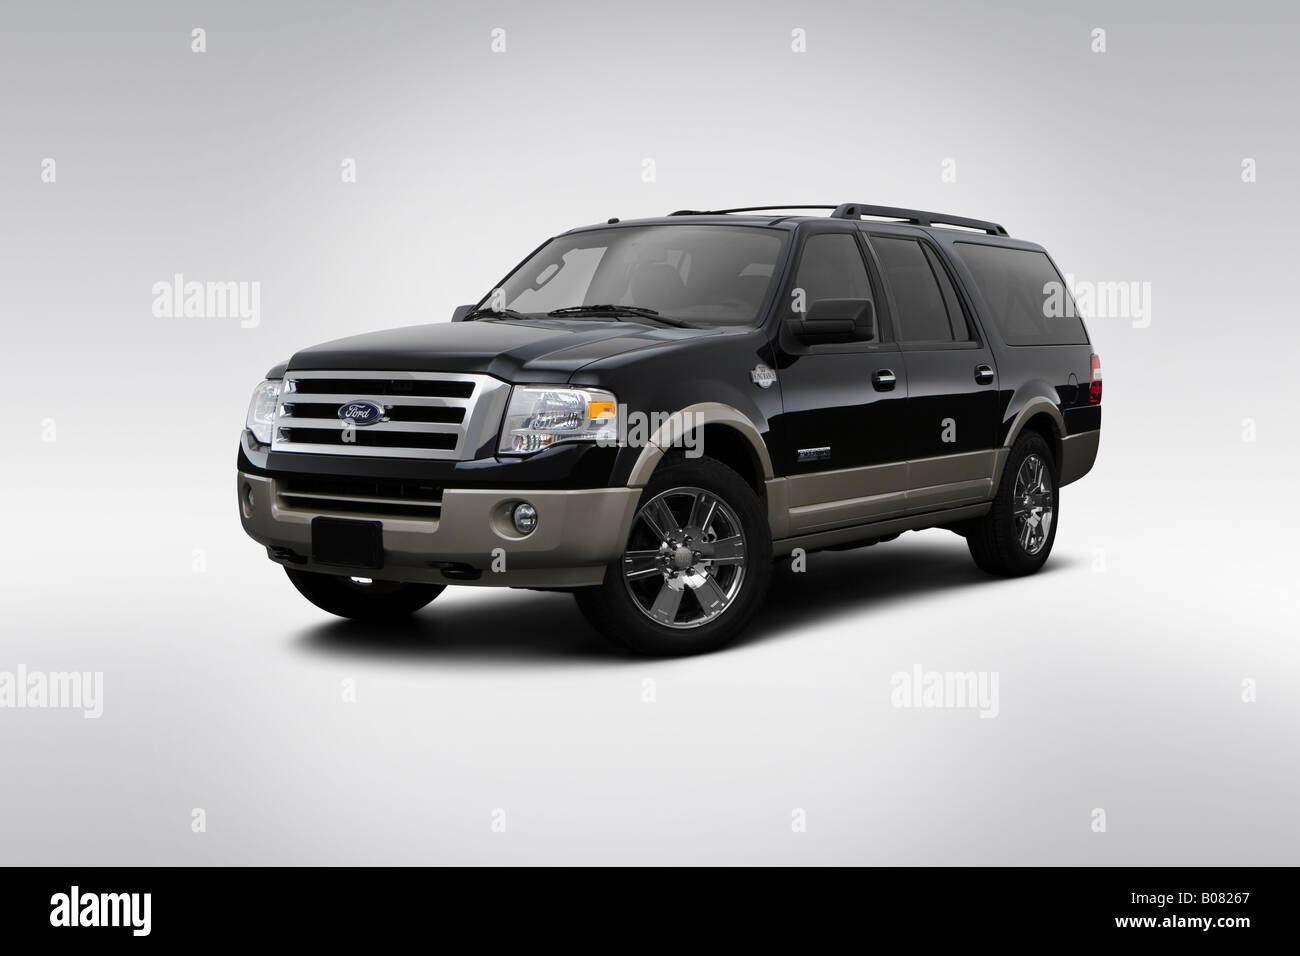 2008 ford expedition el king ranch in black front angle view